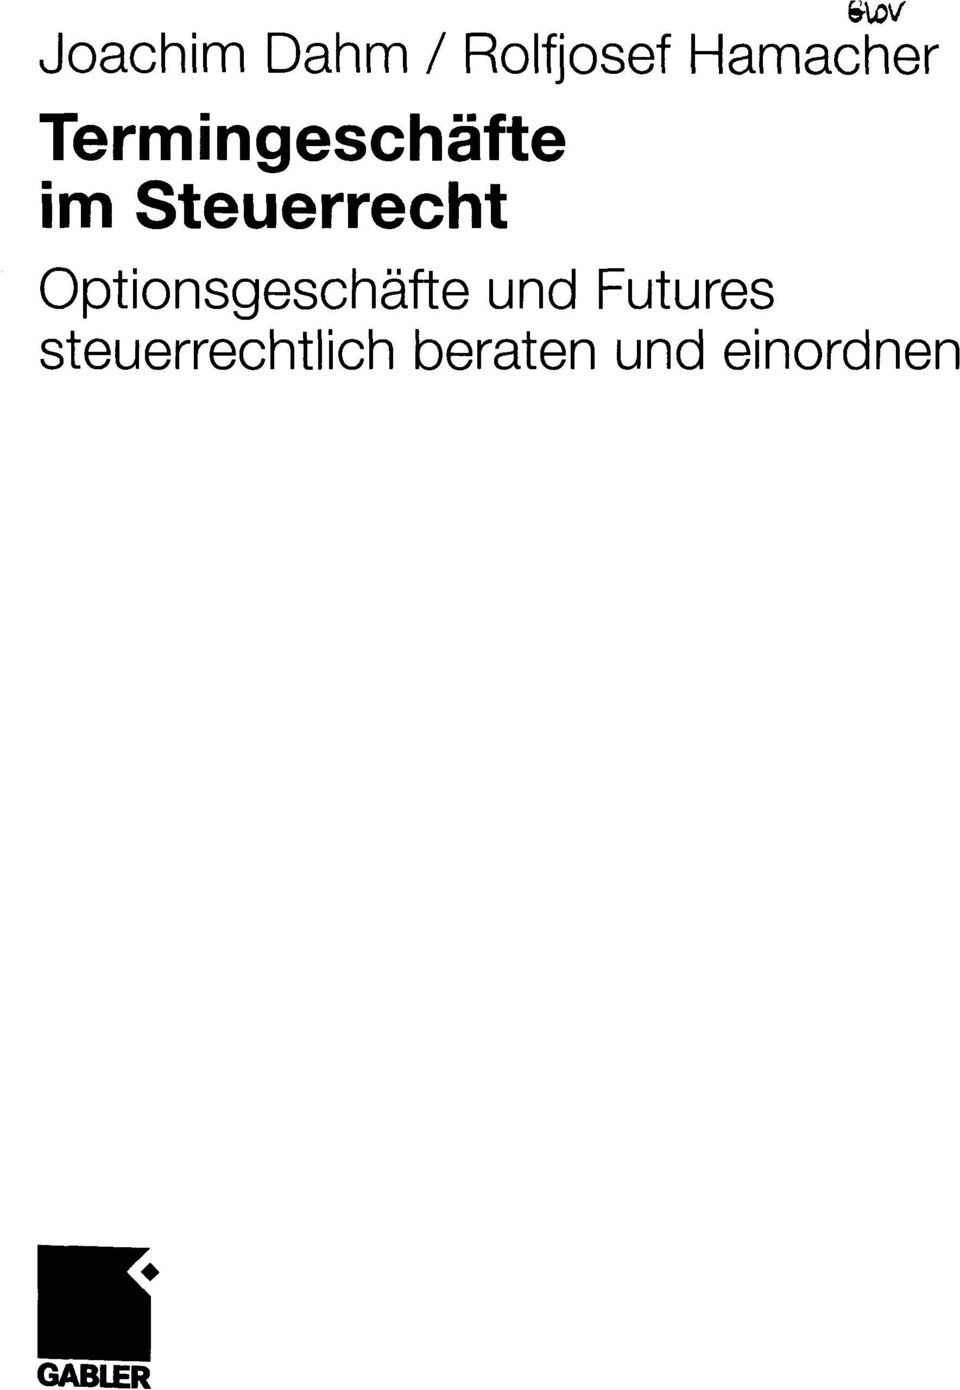 Optionsgeschafte und Futures